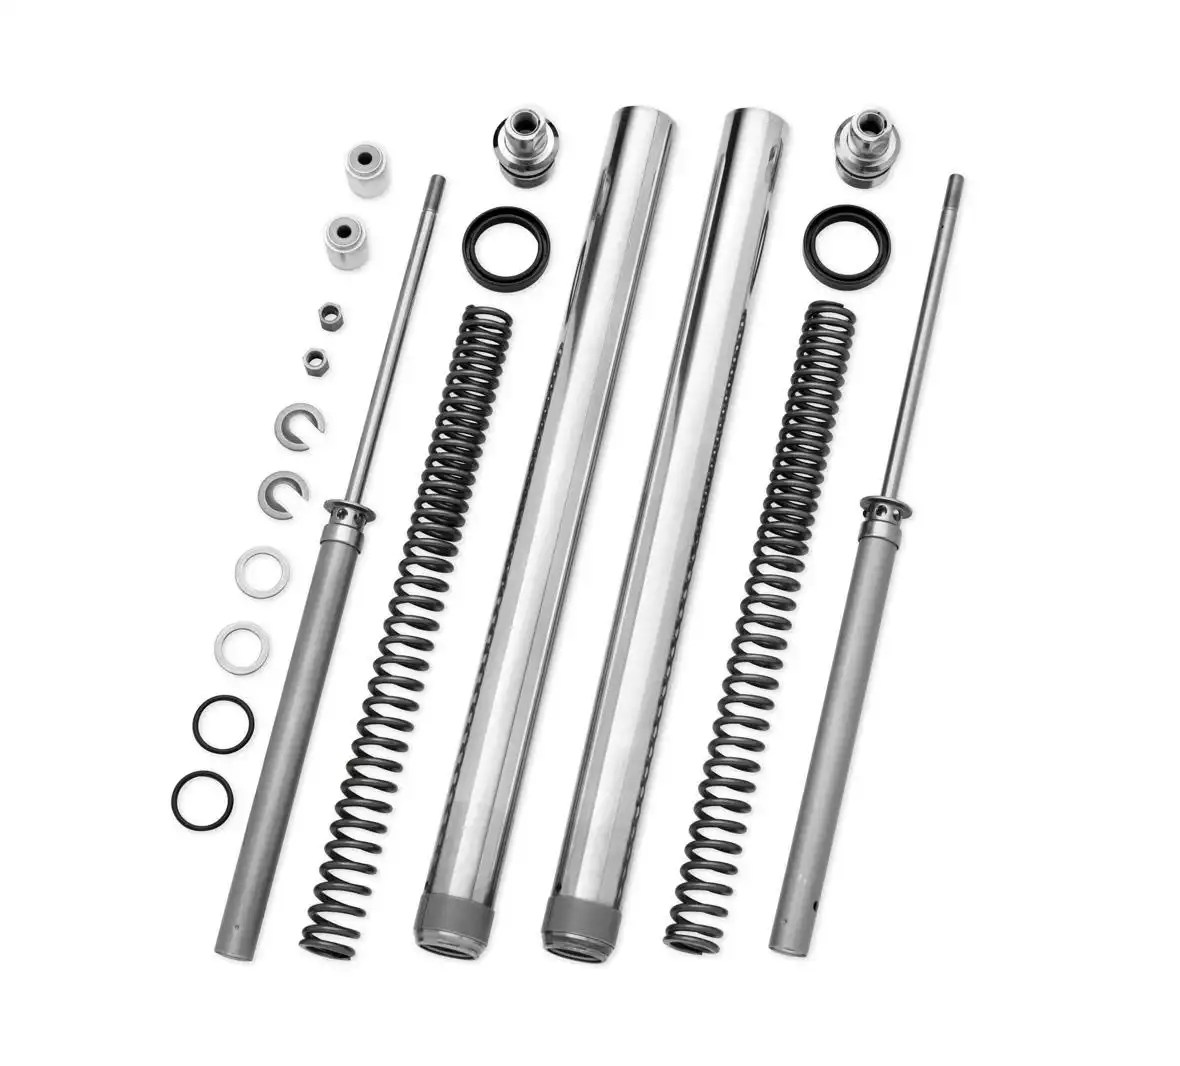 45500106 Premium Ride Double Cartridge Fork Kit at